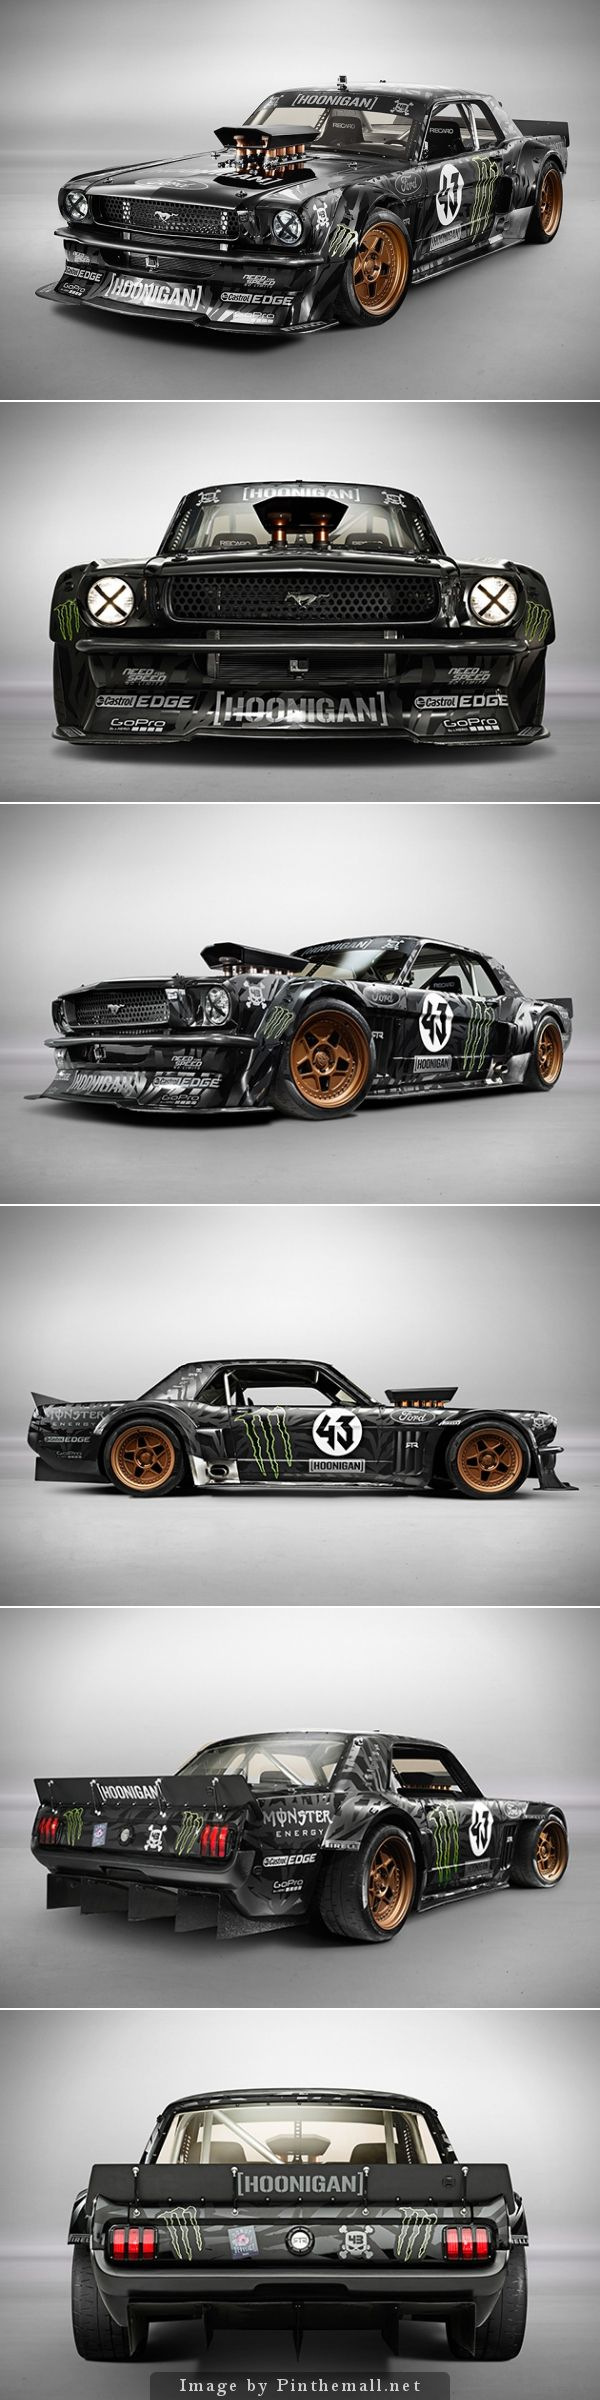 Ken Block's 1965 Ford Mustang Hoonicorn 4 wheel drive about 1000hp